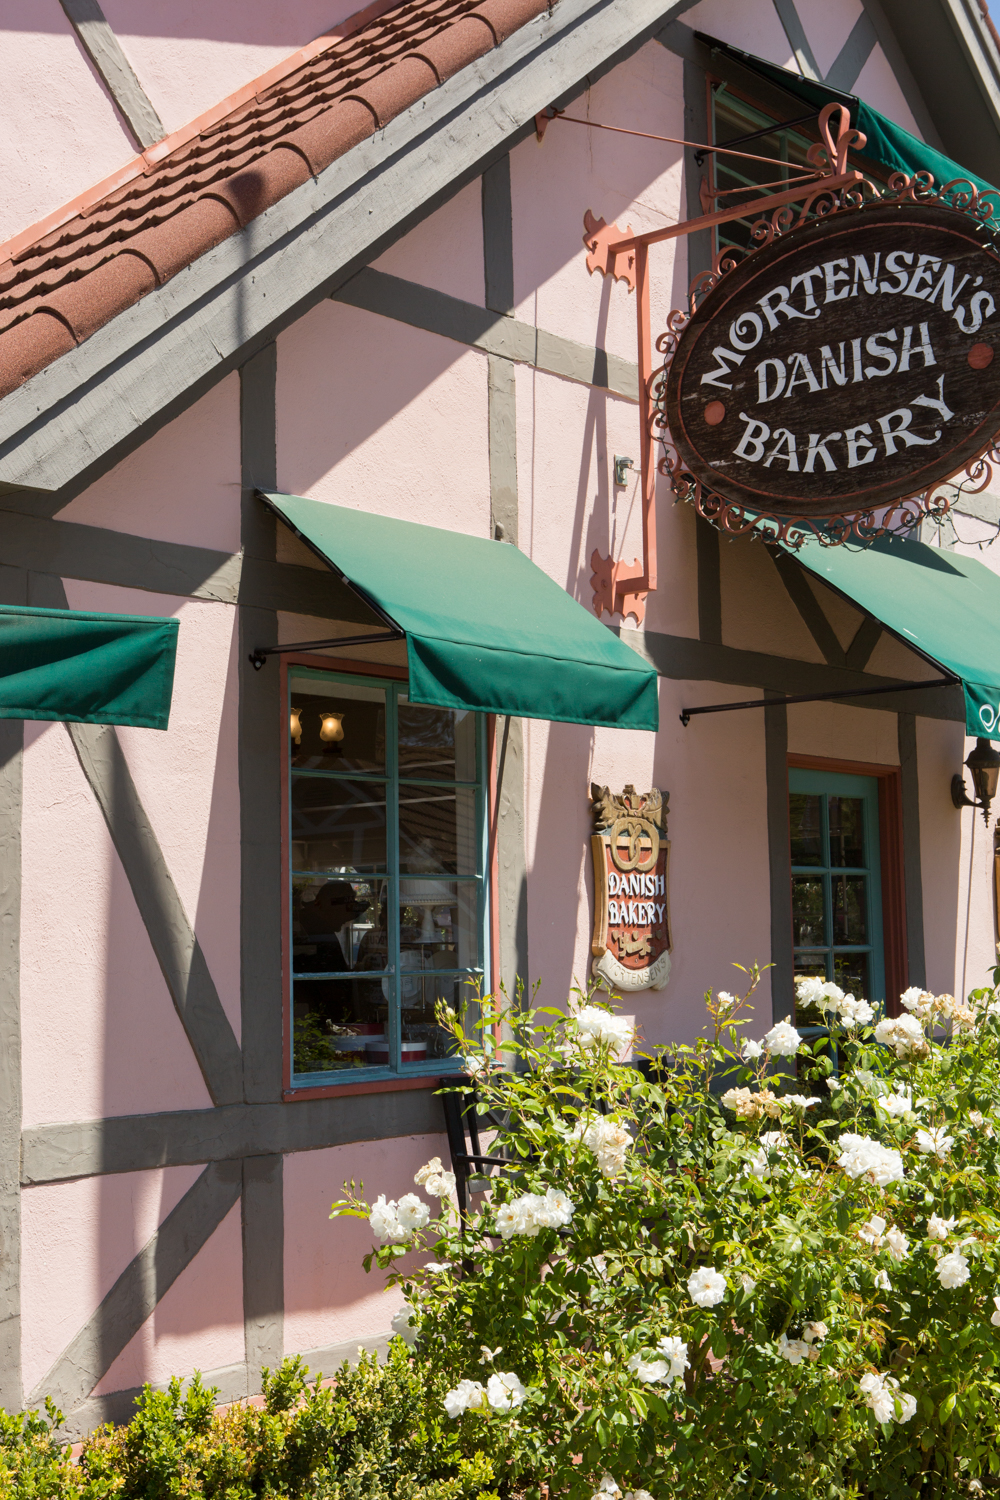 Indulge your sweet tooth at Mortensen's Danish Bakery.